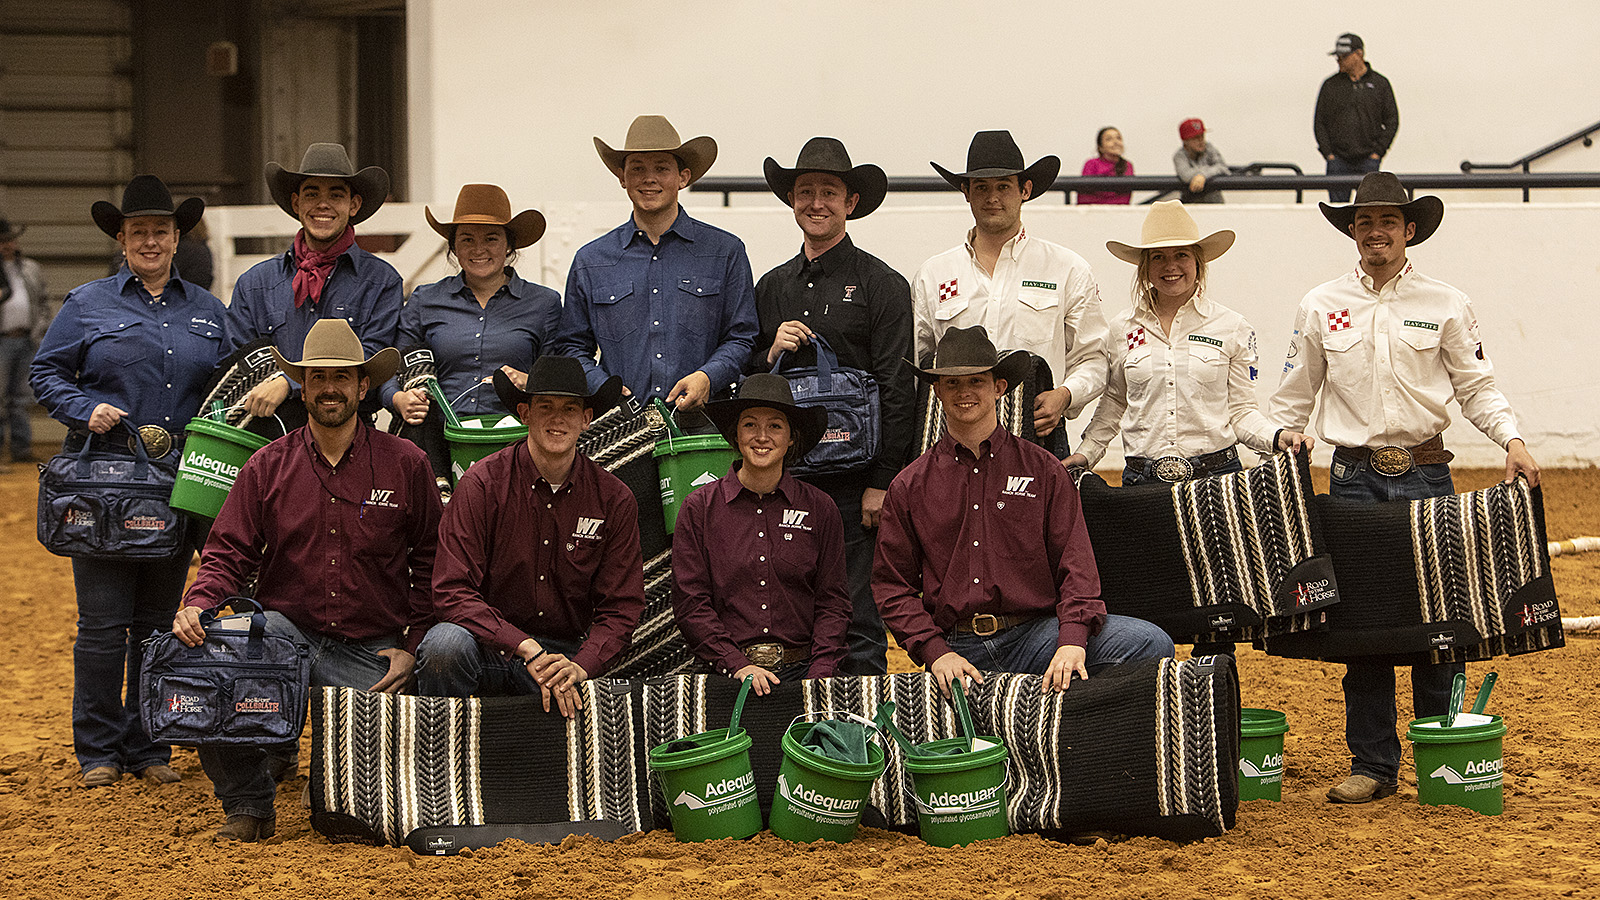 North Central Texas College wins the Road to the Horse Collegiate Colt Starting Challenge.